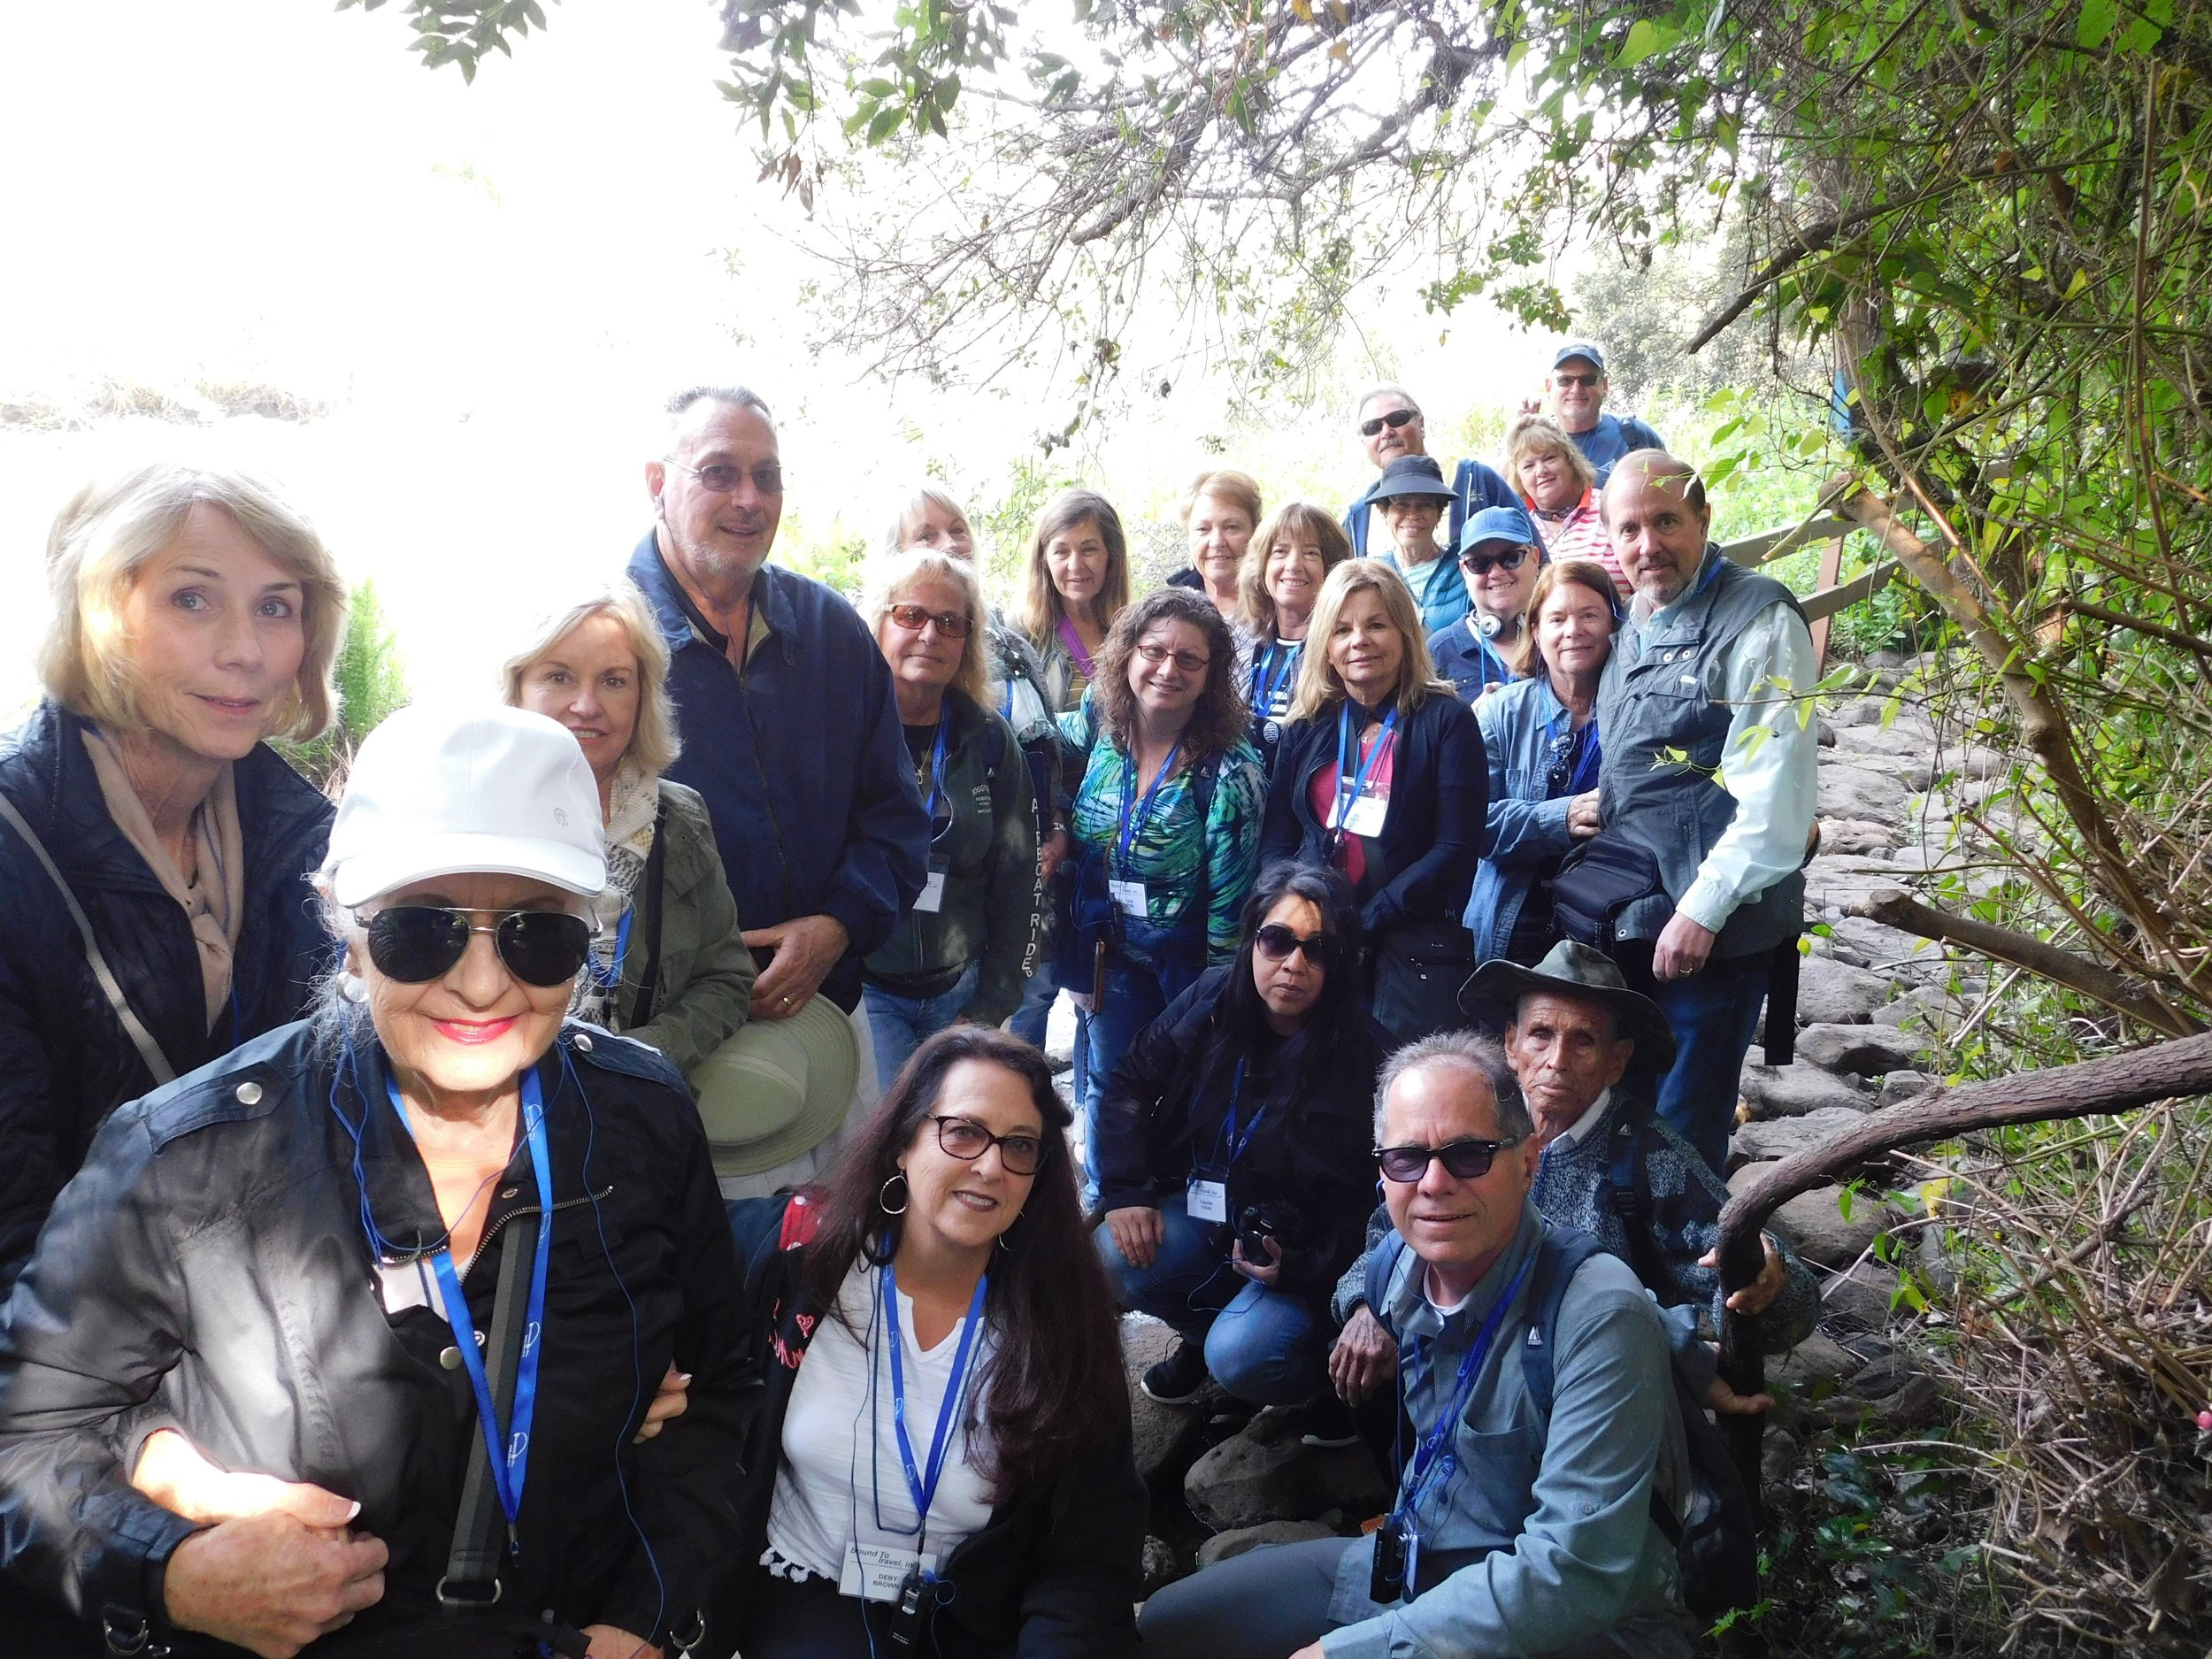 Israel Tour Group 2019